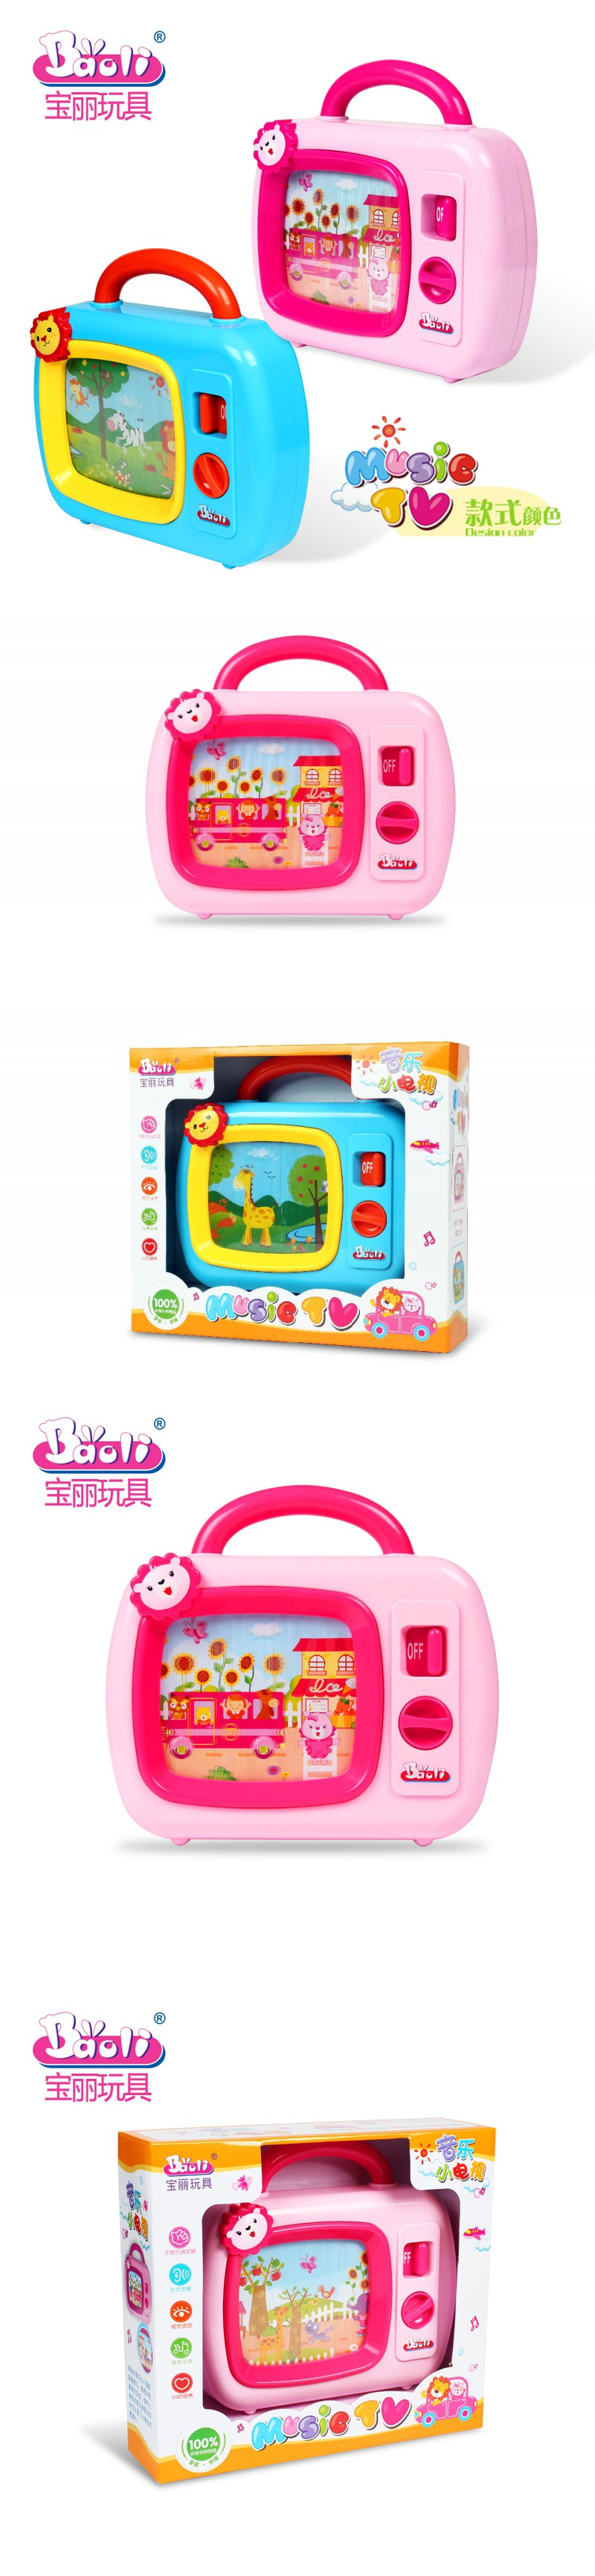 Baby toys images cartoon  Newest Baby Toy Television with Screen Move and Music Educational